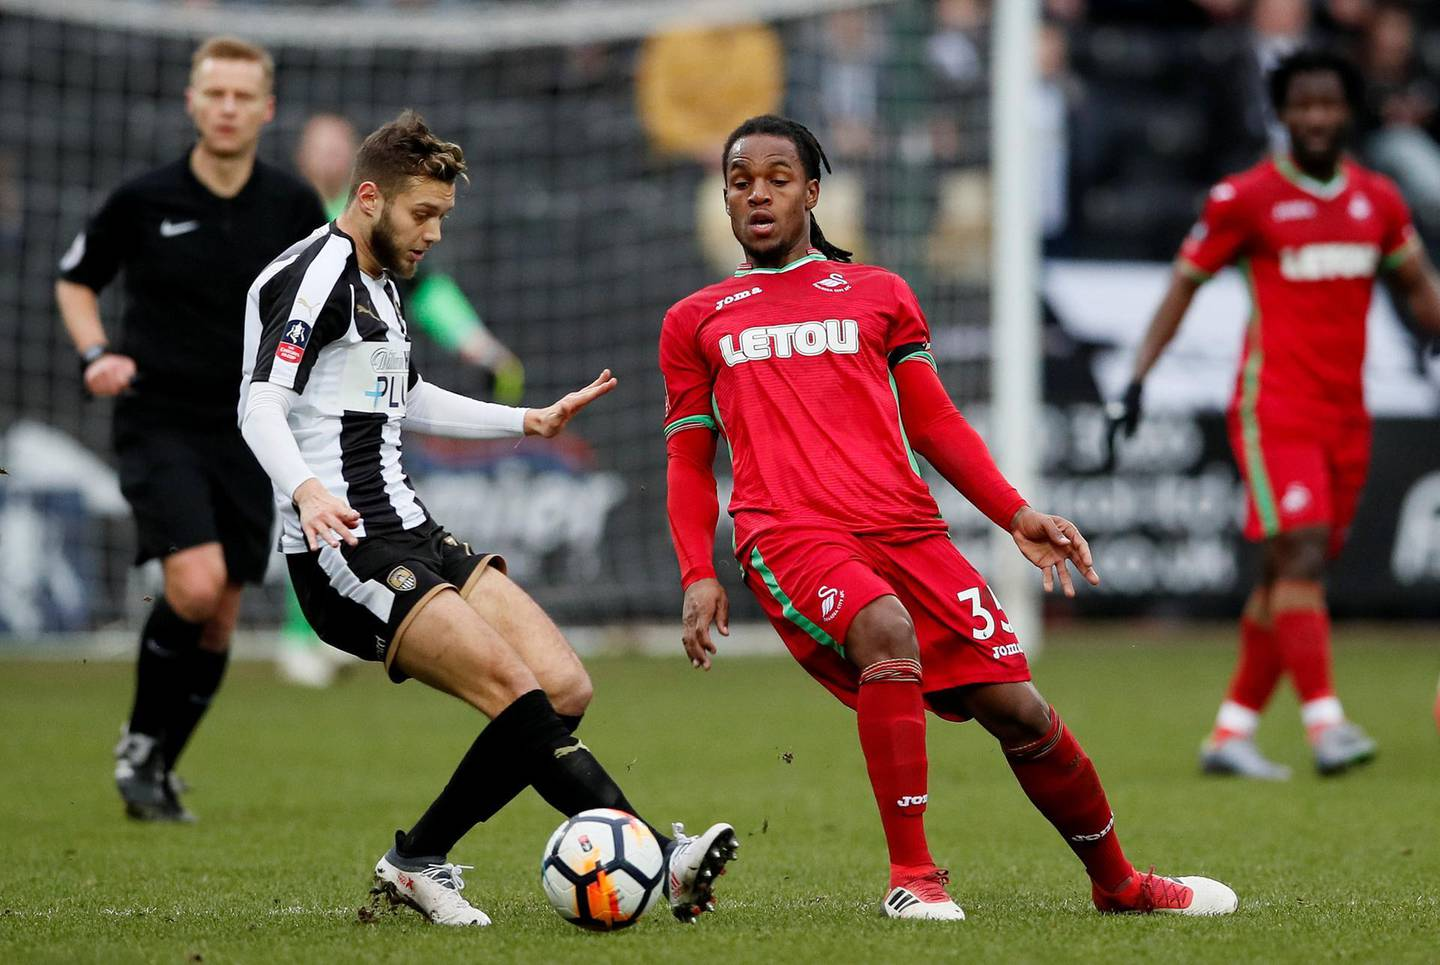 Soccer Football - FA Cup Fourth Round - Notts County vs Swansea City - Meadow Lane, Nottingham, Britain - January 27, 2018   Notts County's Jorge Grant in action with Swansea City's Renato Sanches    REUTERS/David Klein